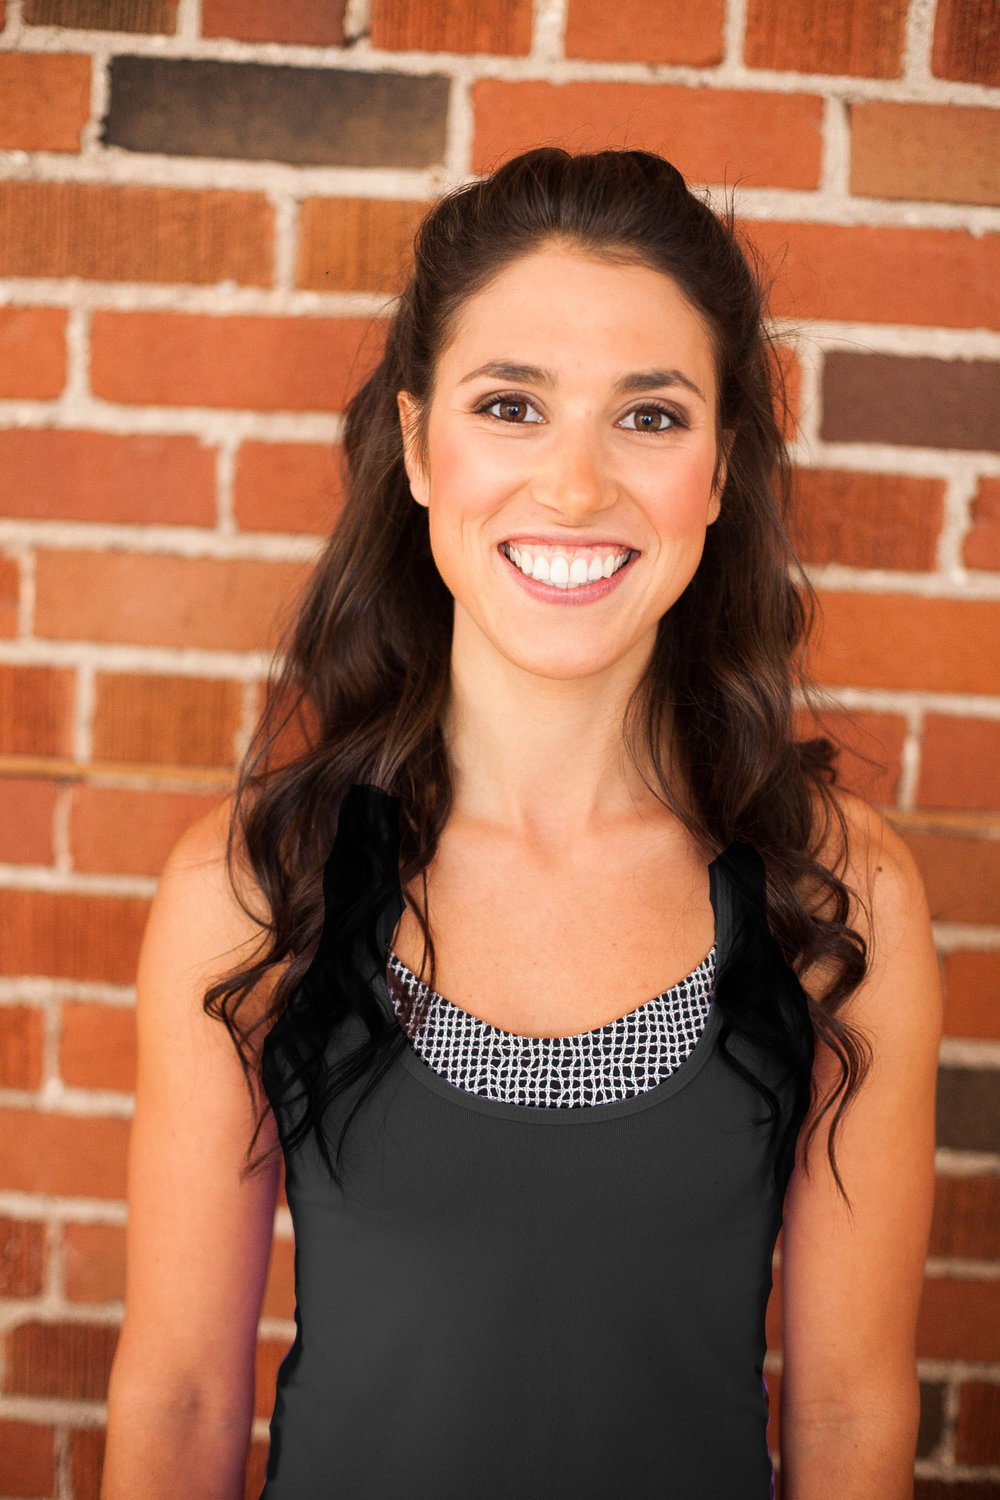 Jamie is your girl if you're in need of some uplifting positivity in your life; her excitable energy and enthusiastic spirit are contagious.   You will find her and her infectious smile cheering on her students in all styles of Yoga, Group Circuit Training and GETnFit at YOGAthletix.